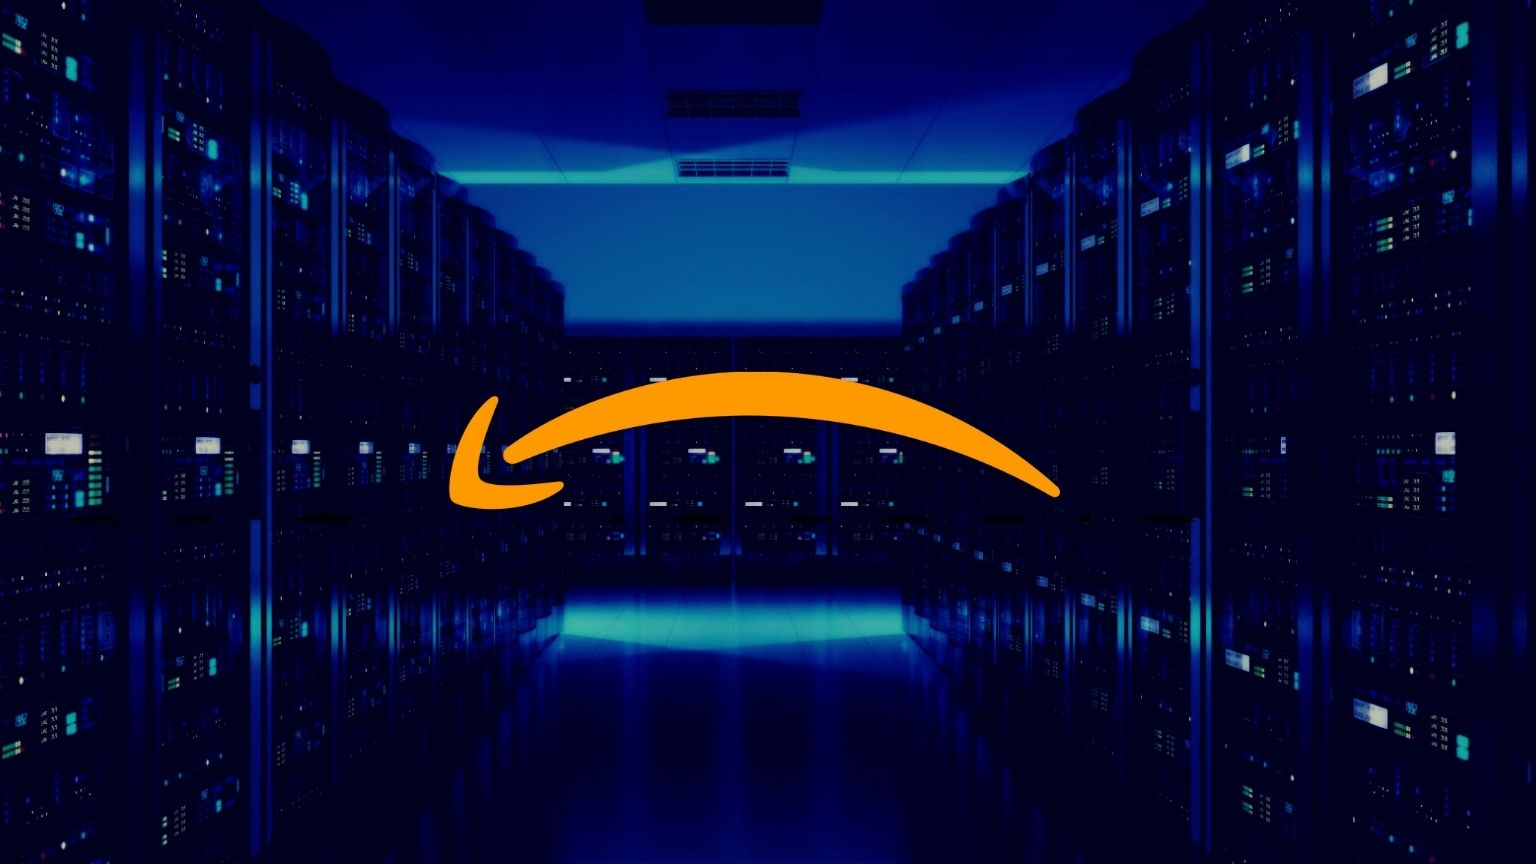 Amazon says it will delete even more websites that aren't breaking the law